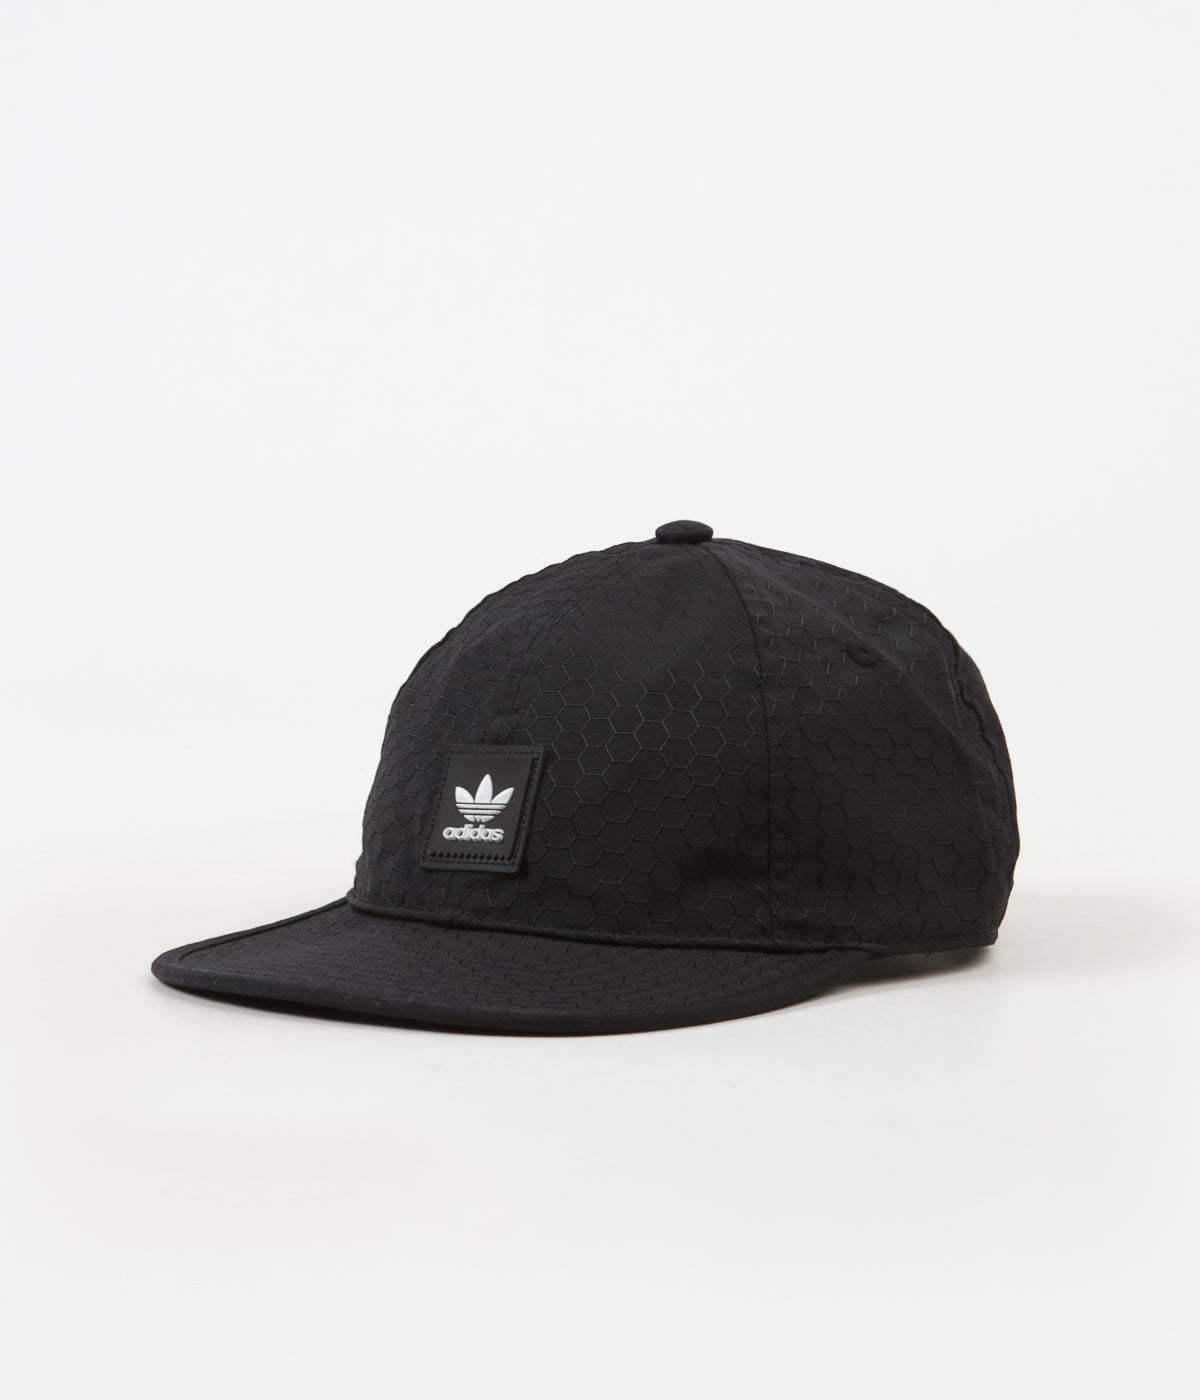 cheap for discount 0bb39 d8ee7 ... Adidas Insley Cap - Solid Grey ...